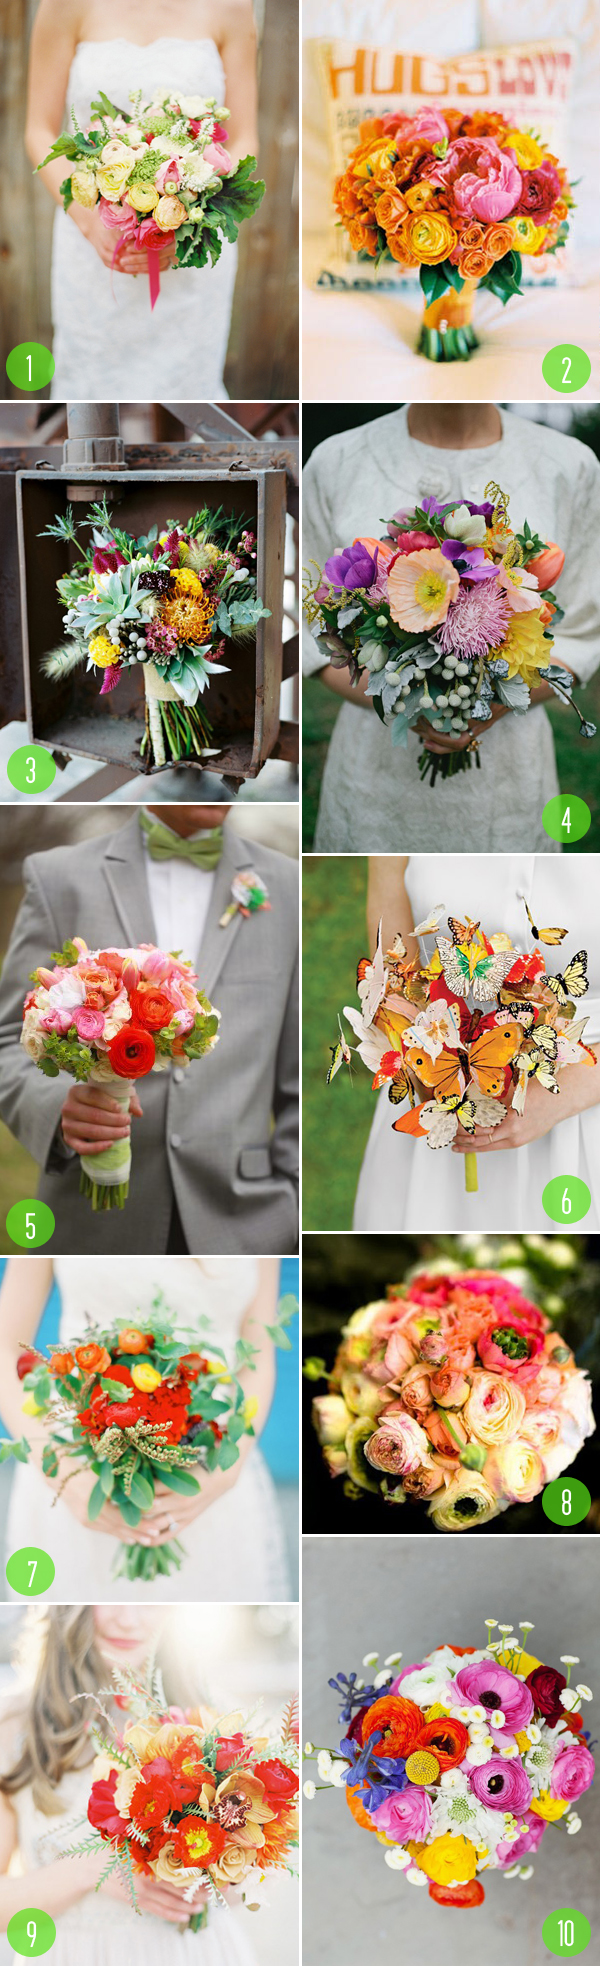 Top 10: Colorful bouquets 1